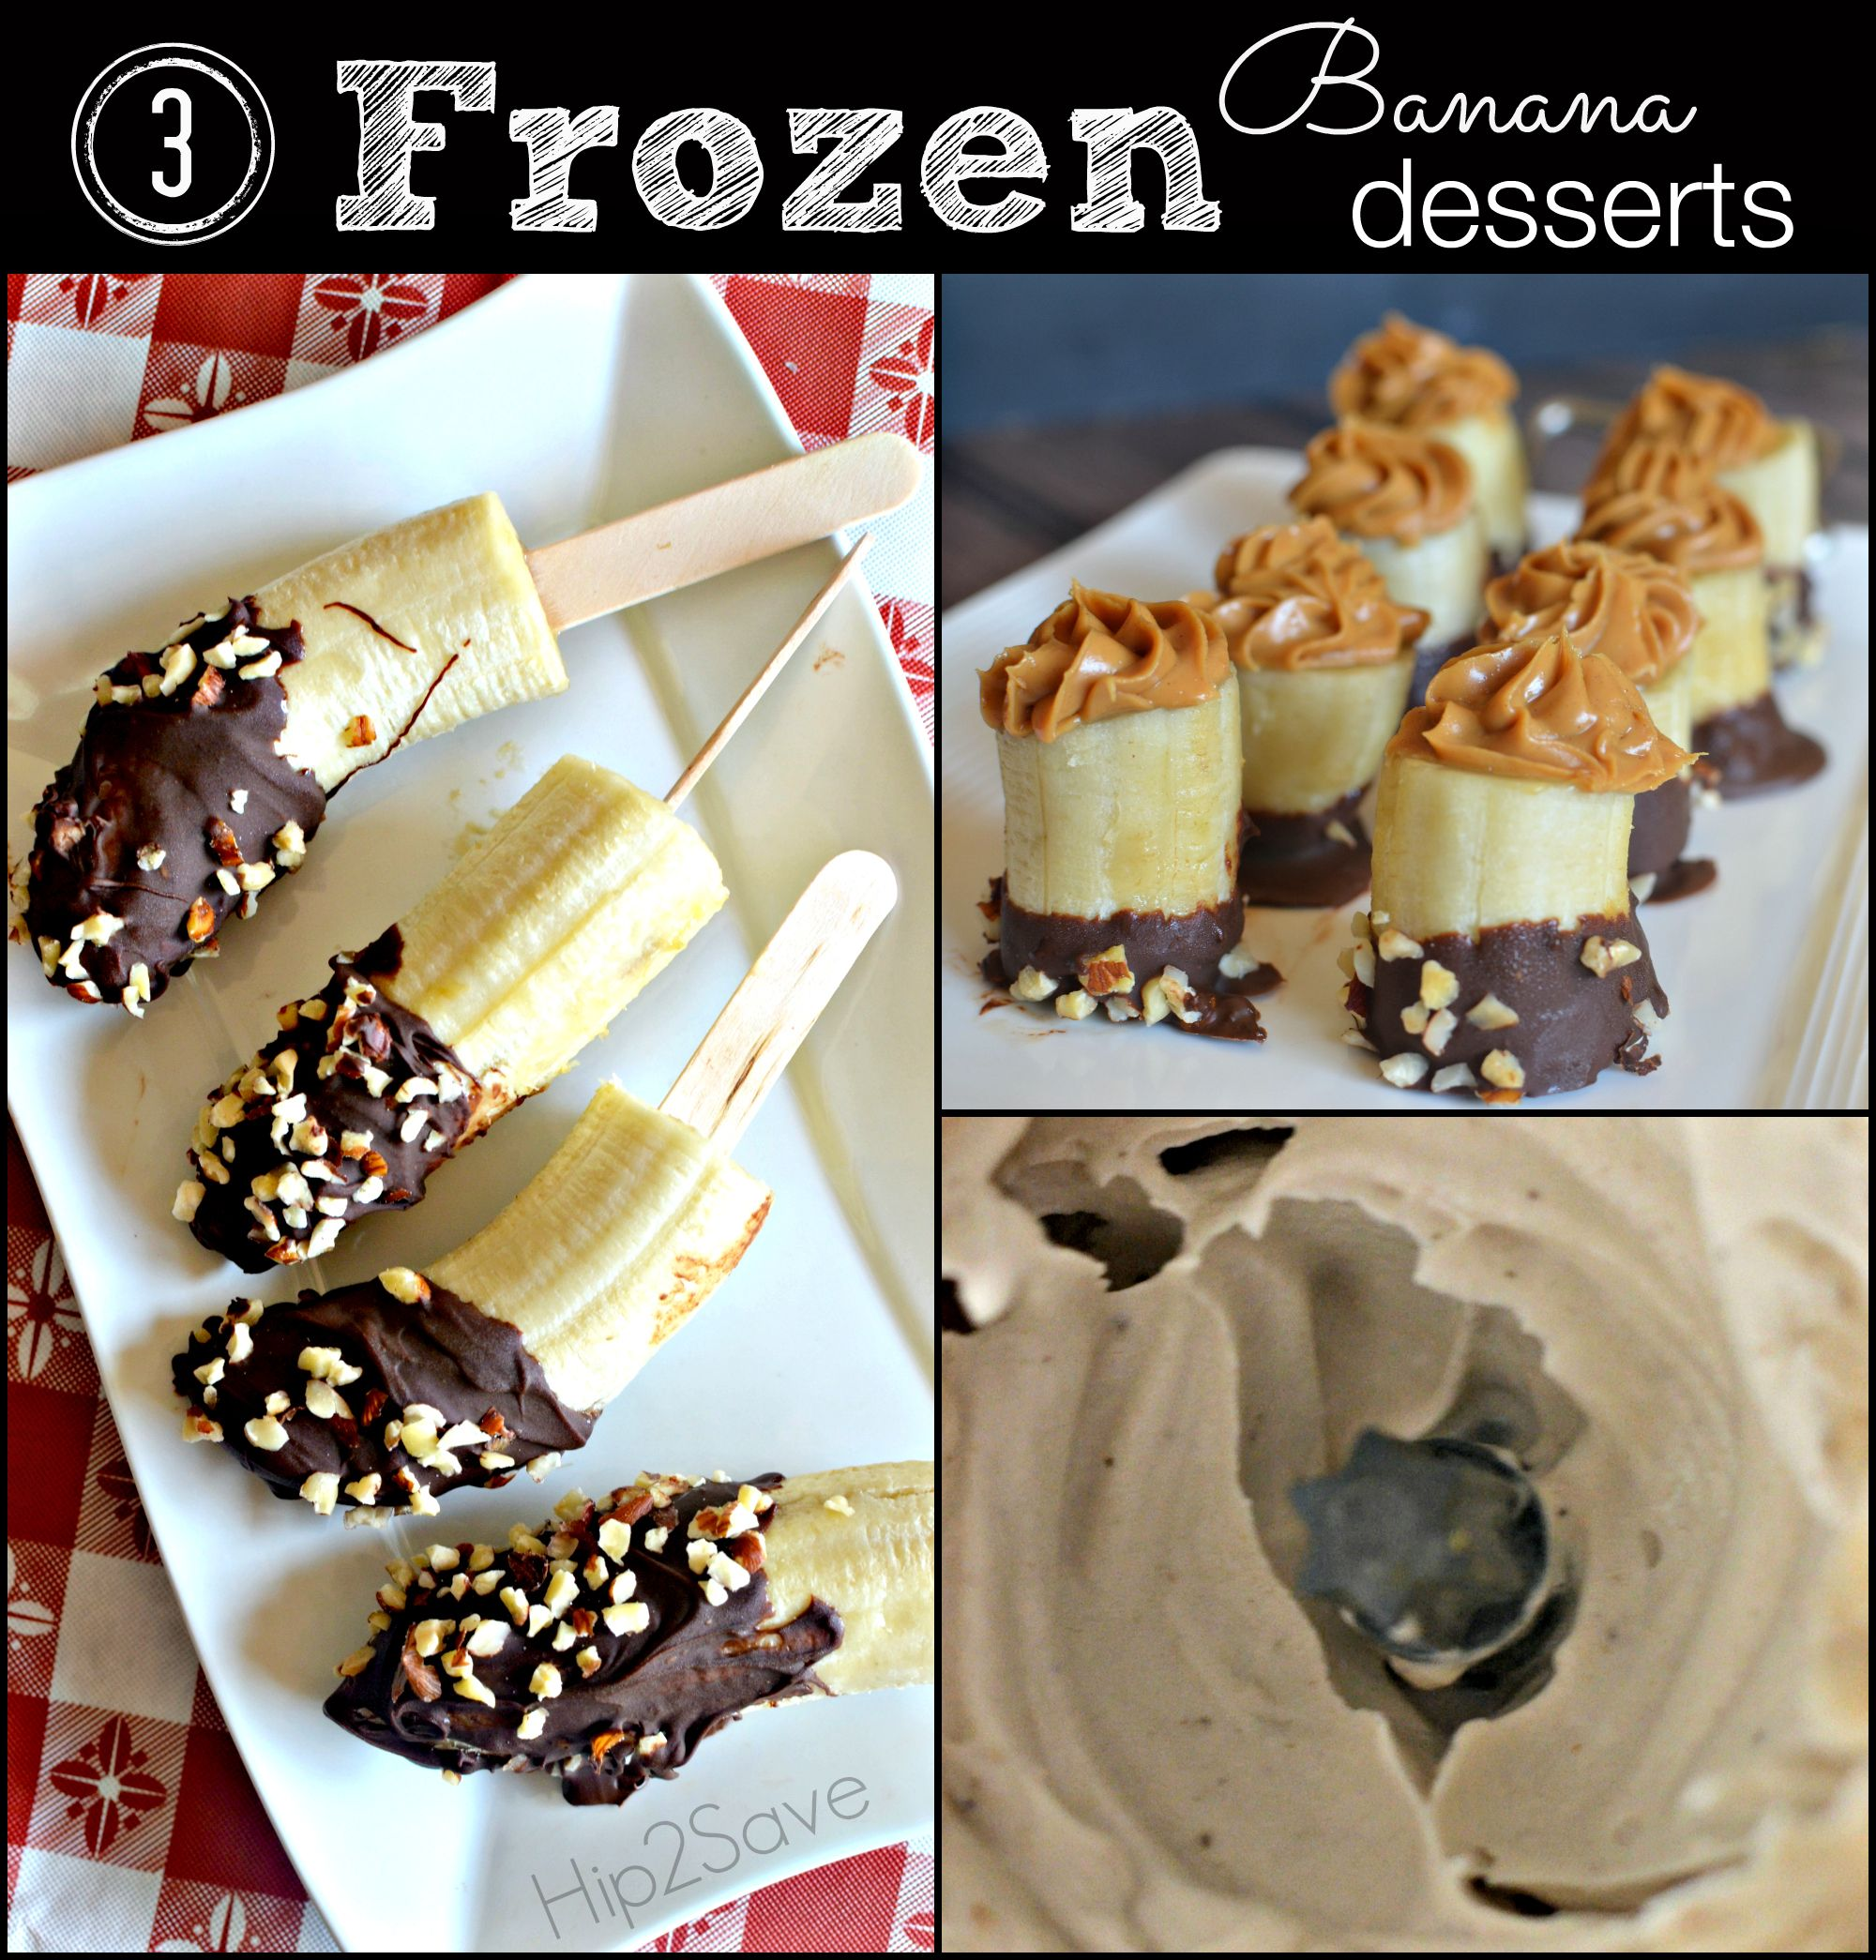 3 Easy Frozen Banana Desserts If Your Family Is Crazy About Bananas And Treats Then This The Recipe For You Have Make Dessert